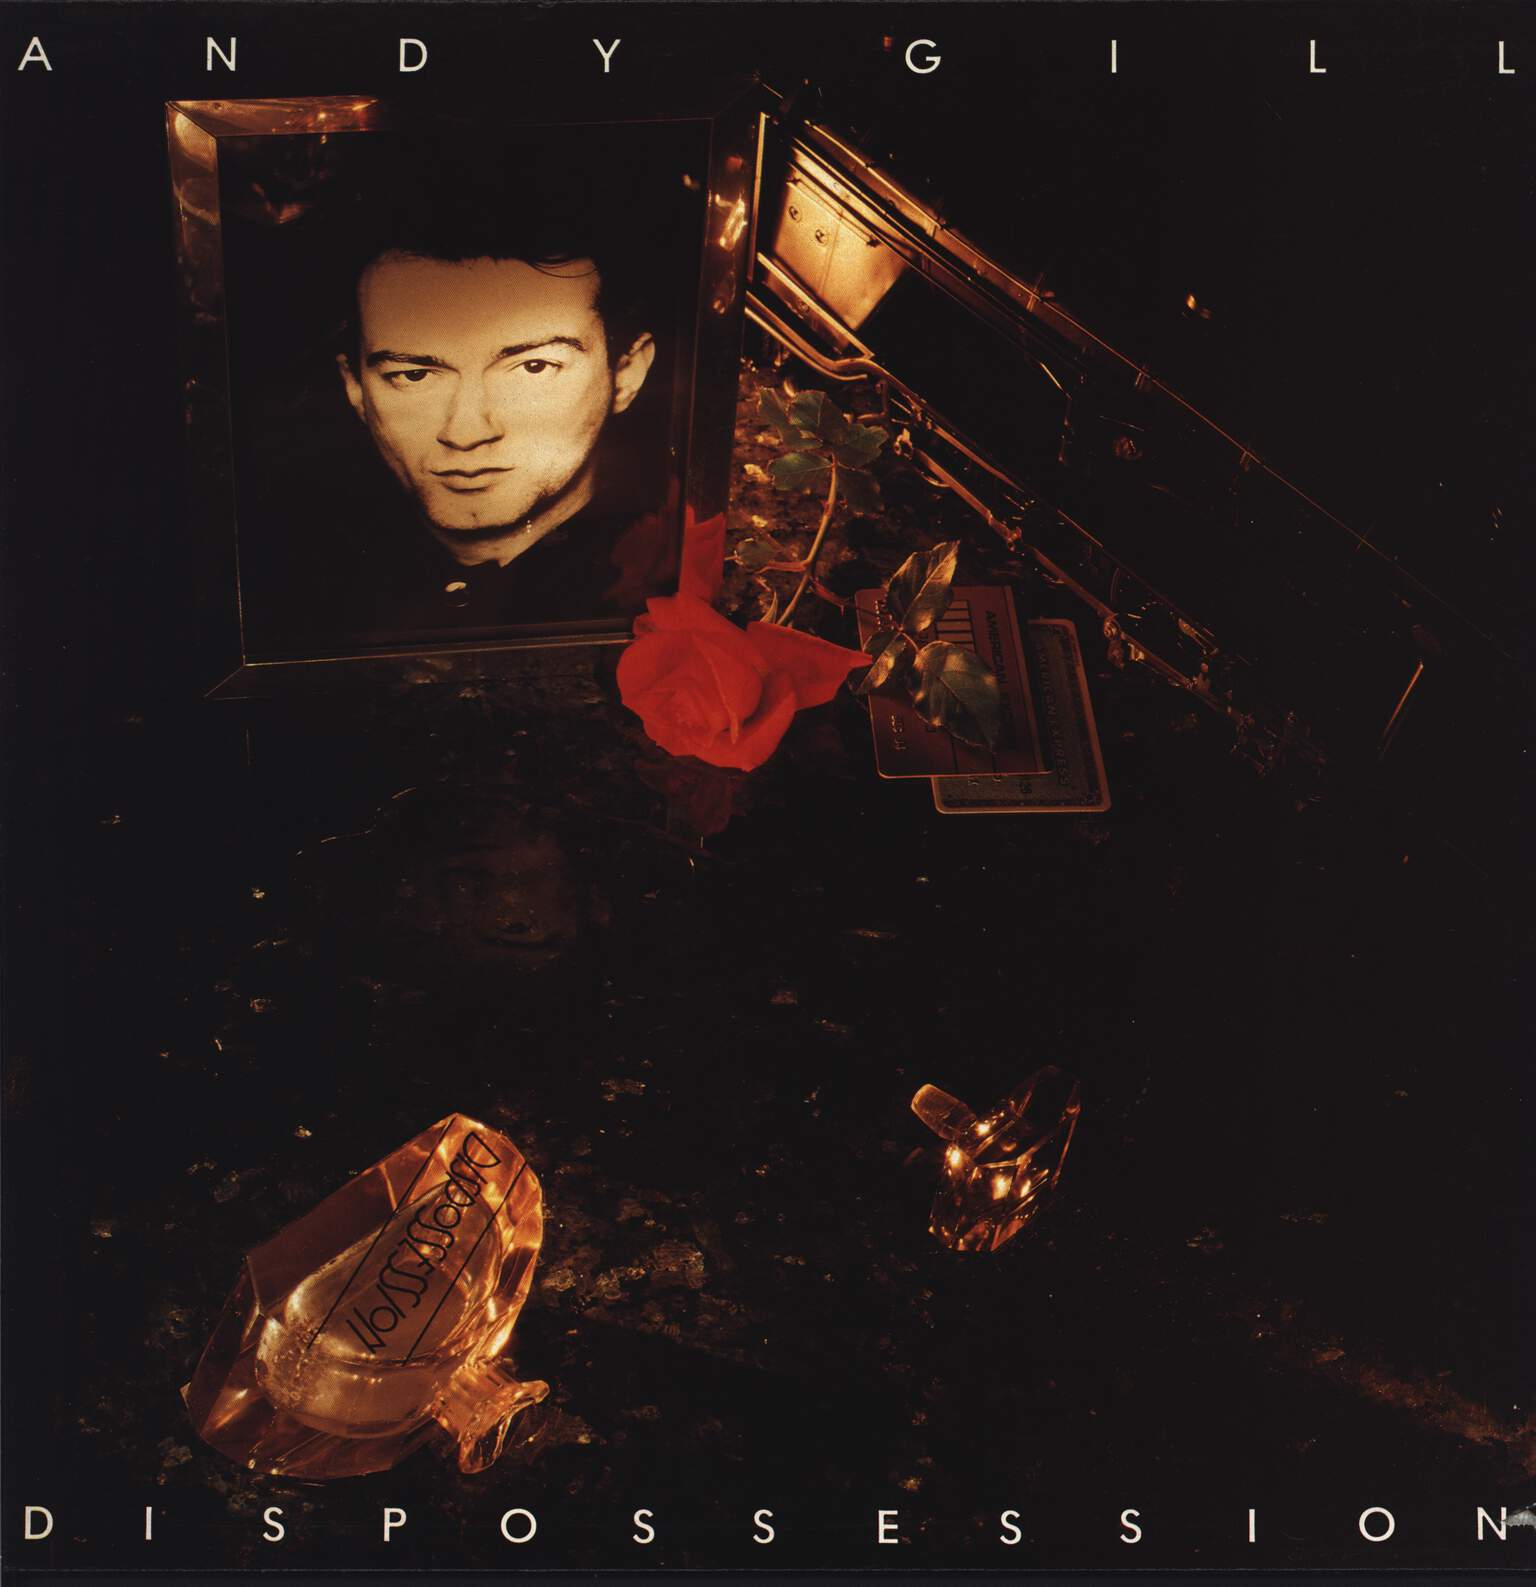 "Andy Gill: Dispossession, 12"" Maxi Single (Vinyl)"